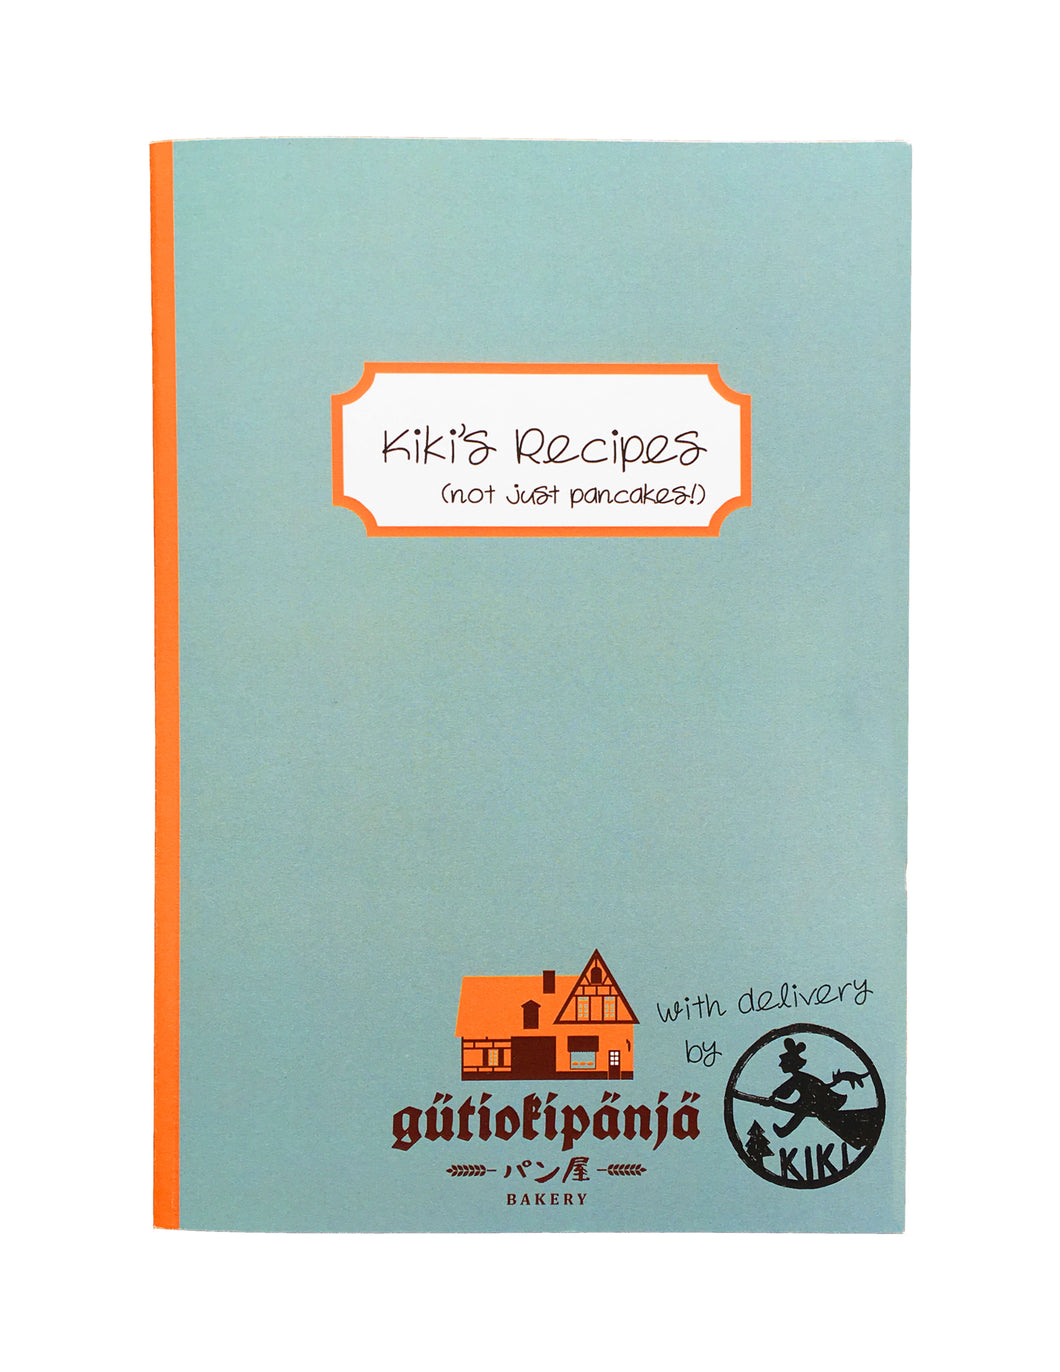 studio ghibli plain paper notebook kiki